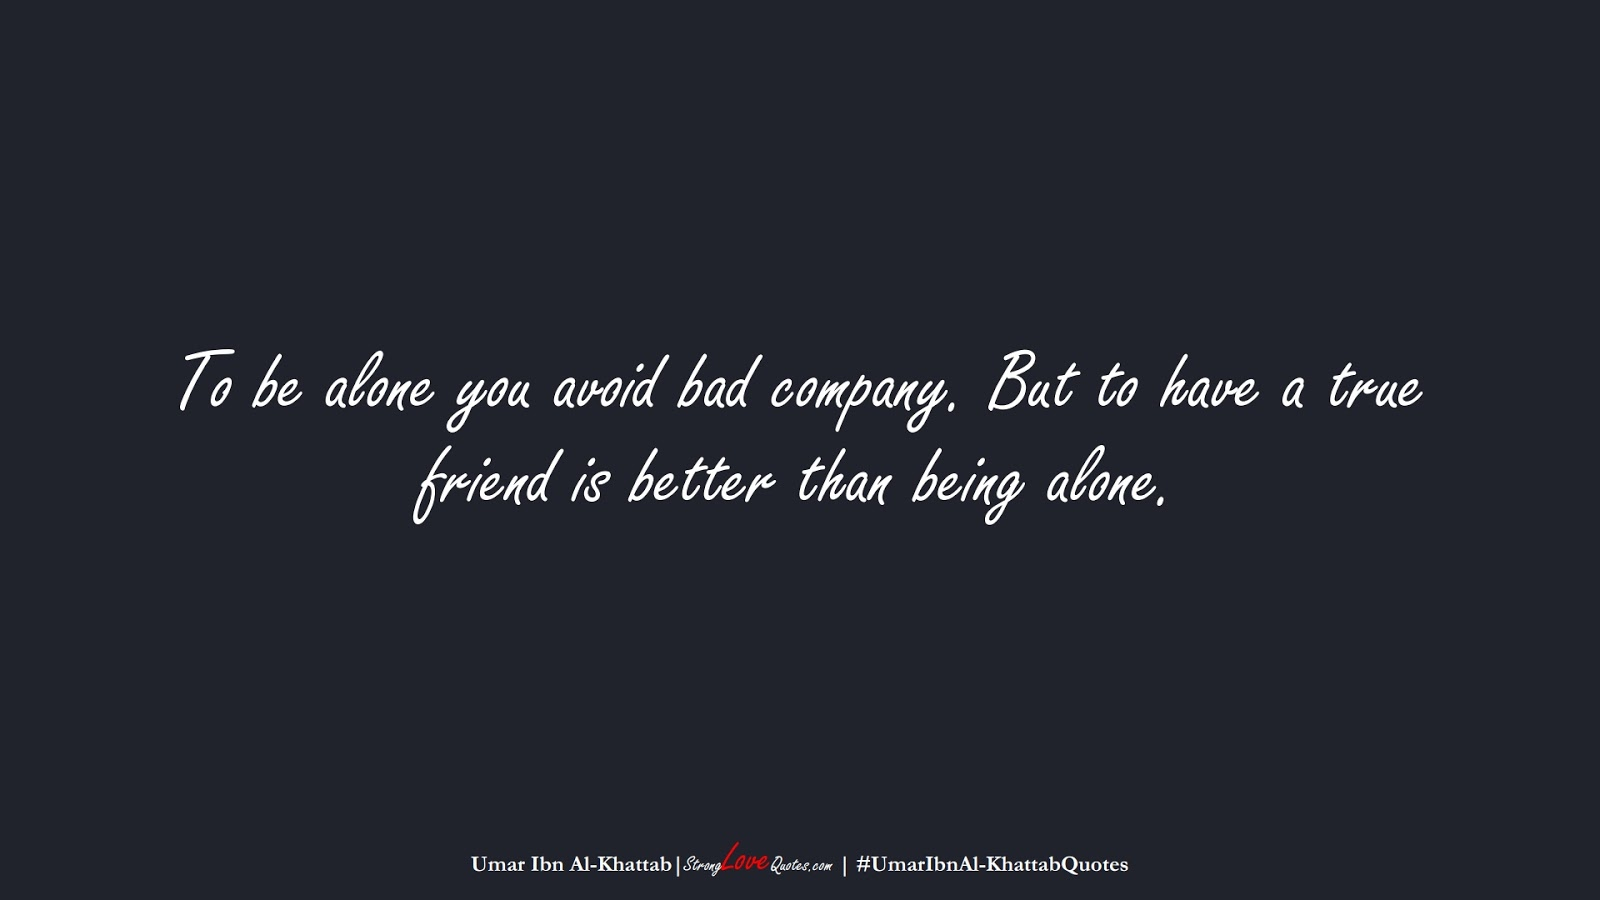 To be alone you avoid bad company. But to have a true friend is better than being alone. (Umar Ibn Al-Khattab);  #UmarIbnAl-KhattabQuotes